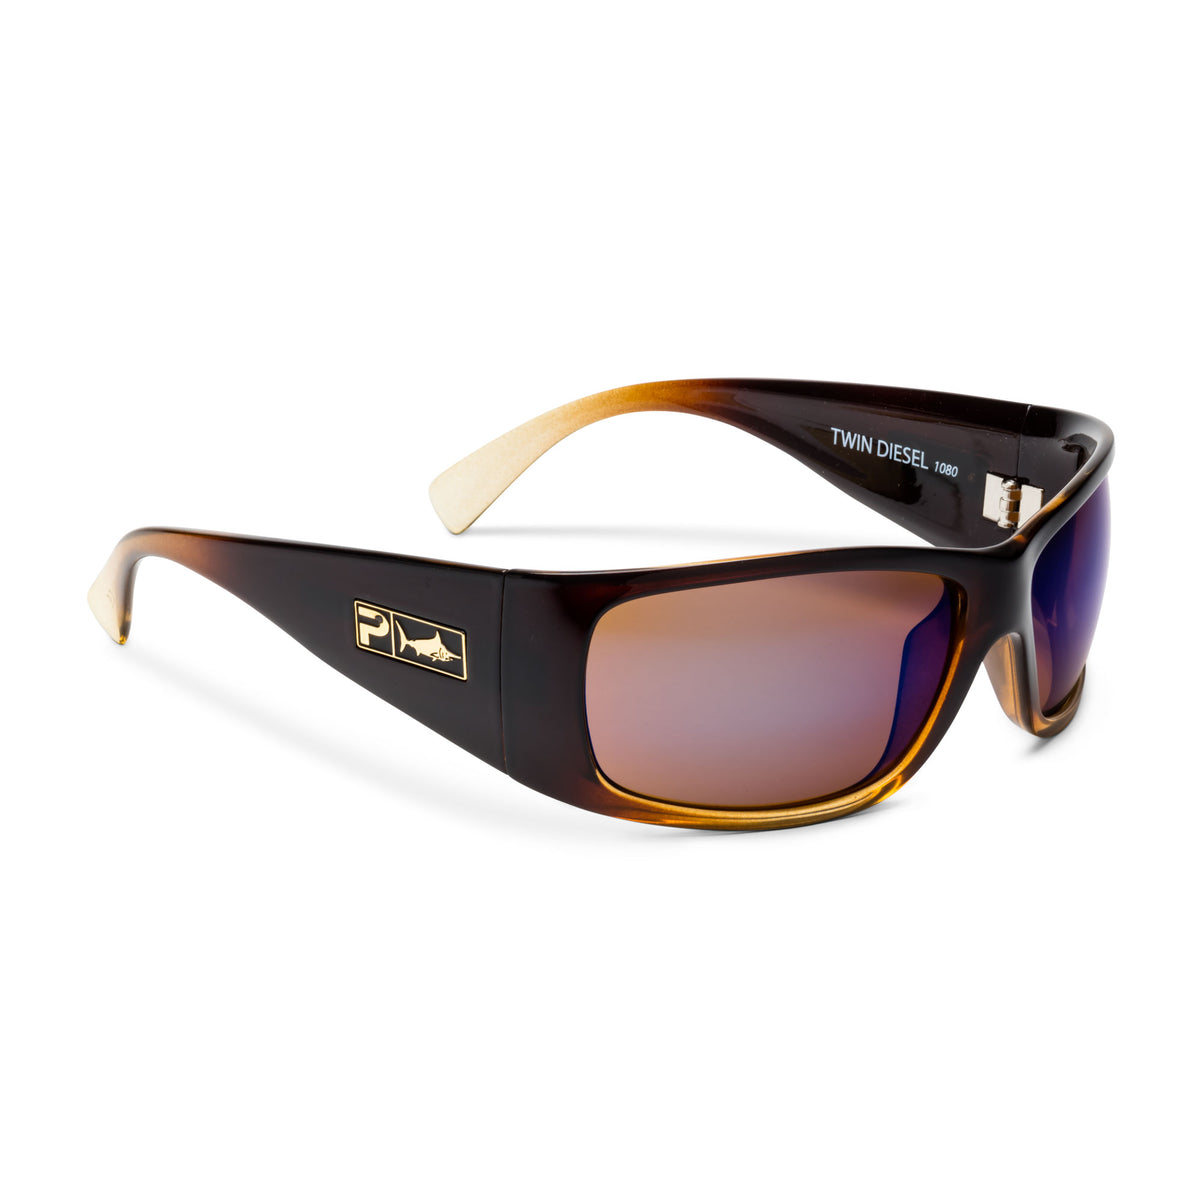 Twin Diesel - Polarized XP-700™ Polycarbonate Lens Big Image - 1